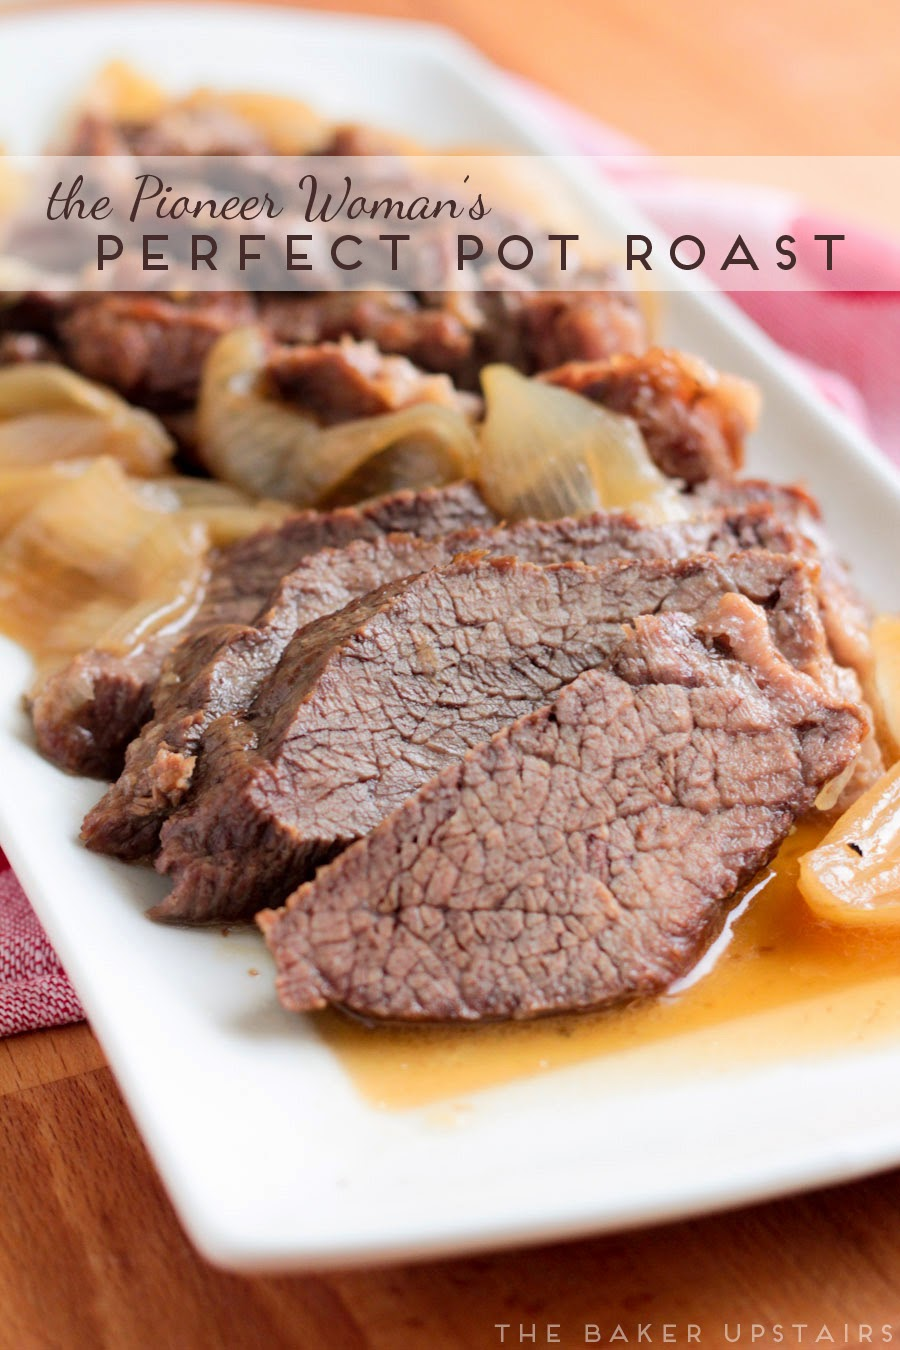 This recipe for perfect pot roast is so savory and flavorful, and yields perfect results every time!